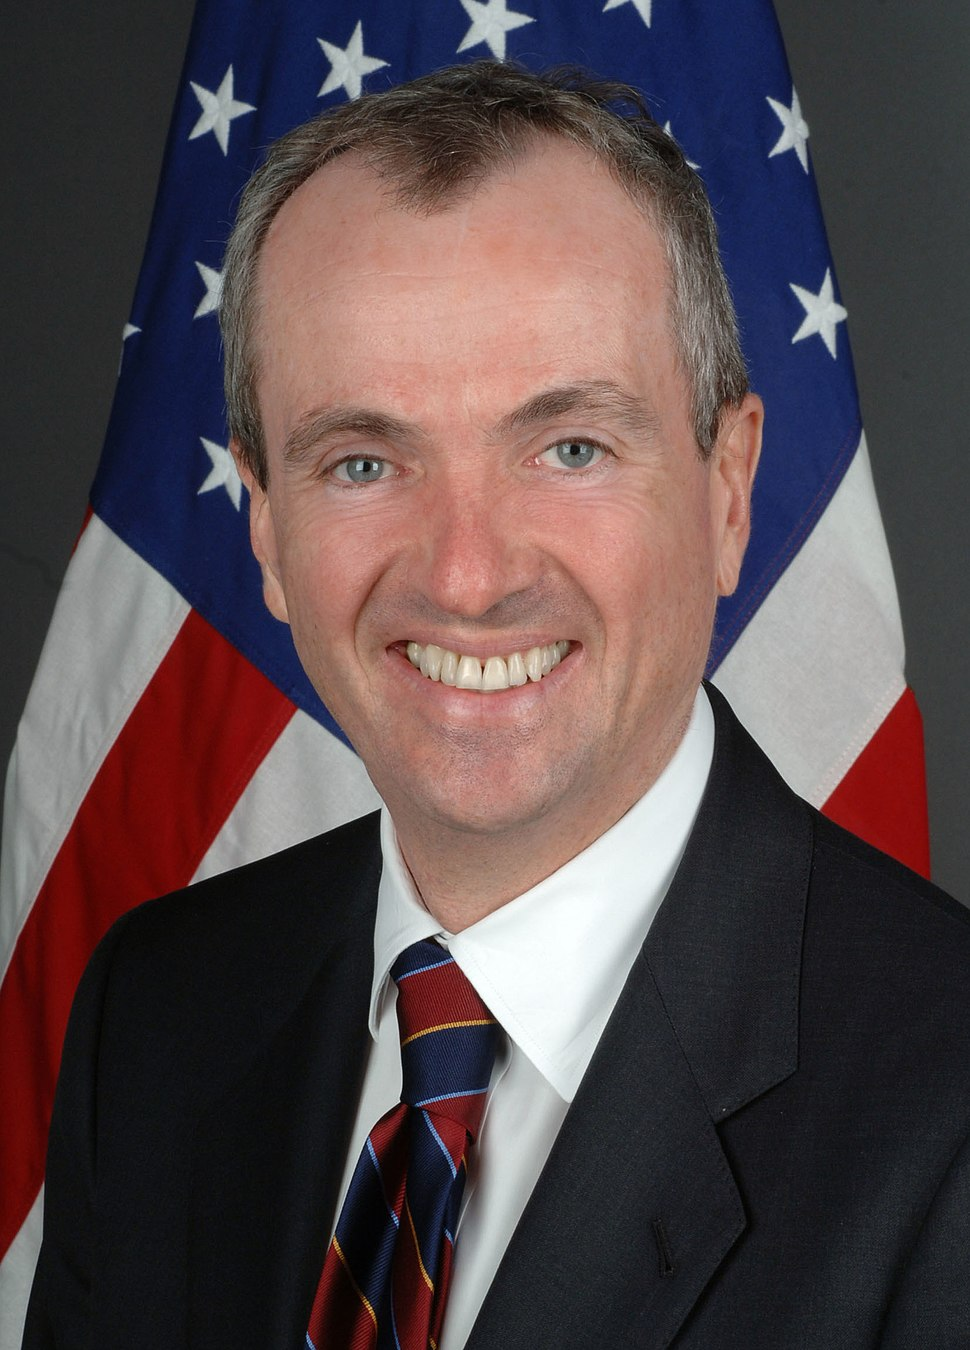 Philip D. Murphy (cropped)